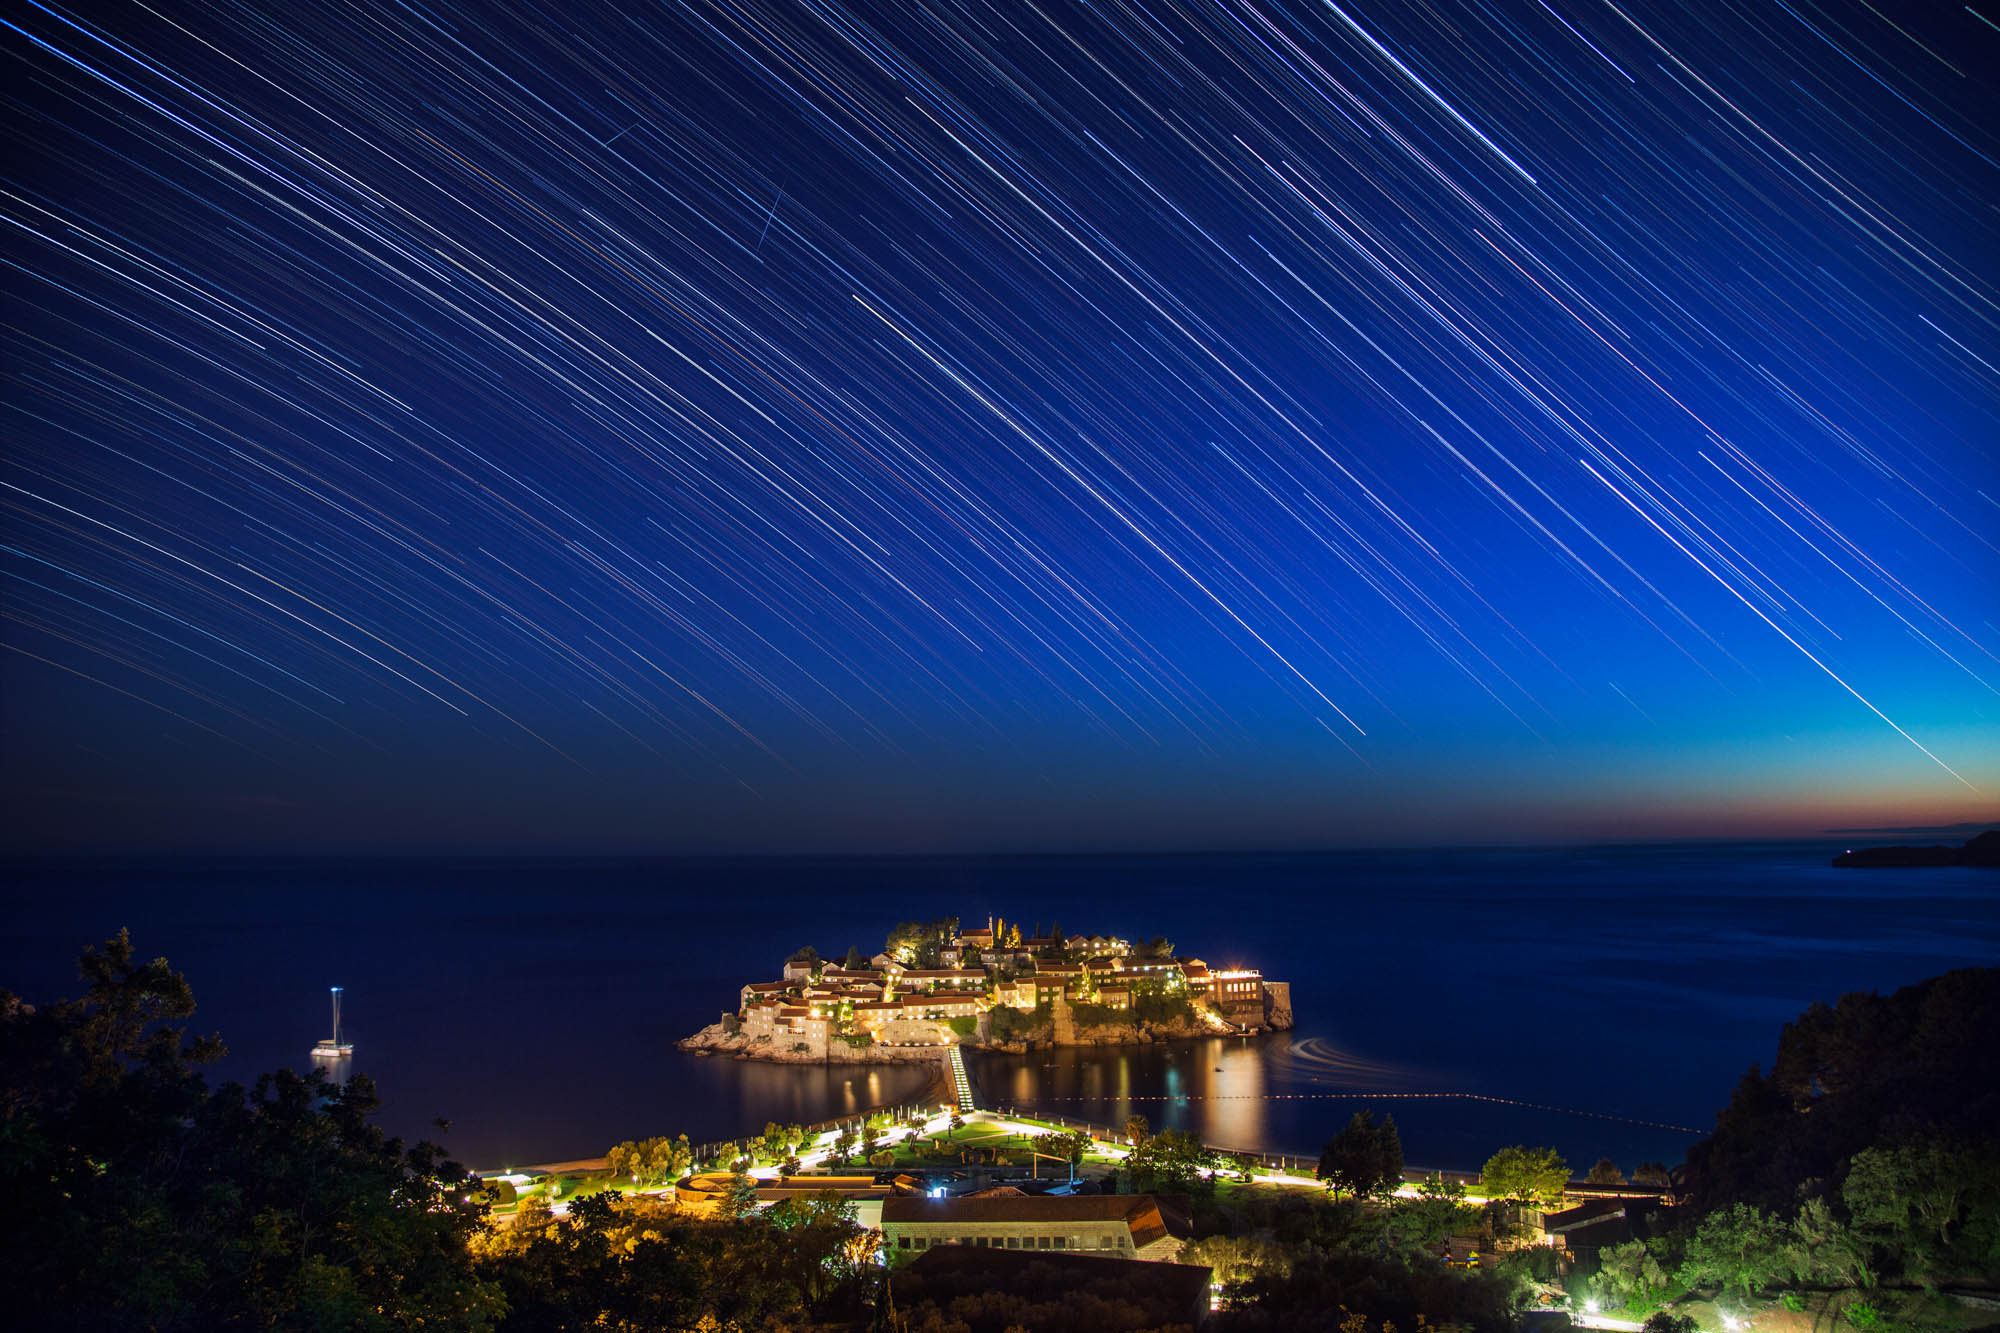 long exposure astrophotography of star trails in Sveti Stefan in Montenegro